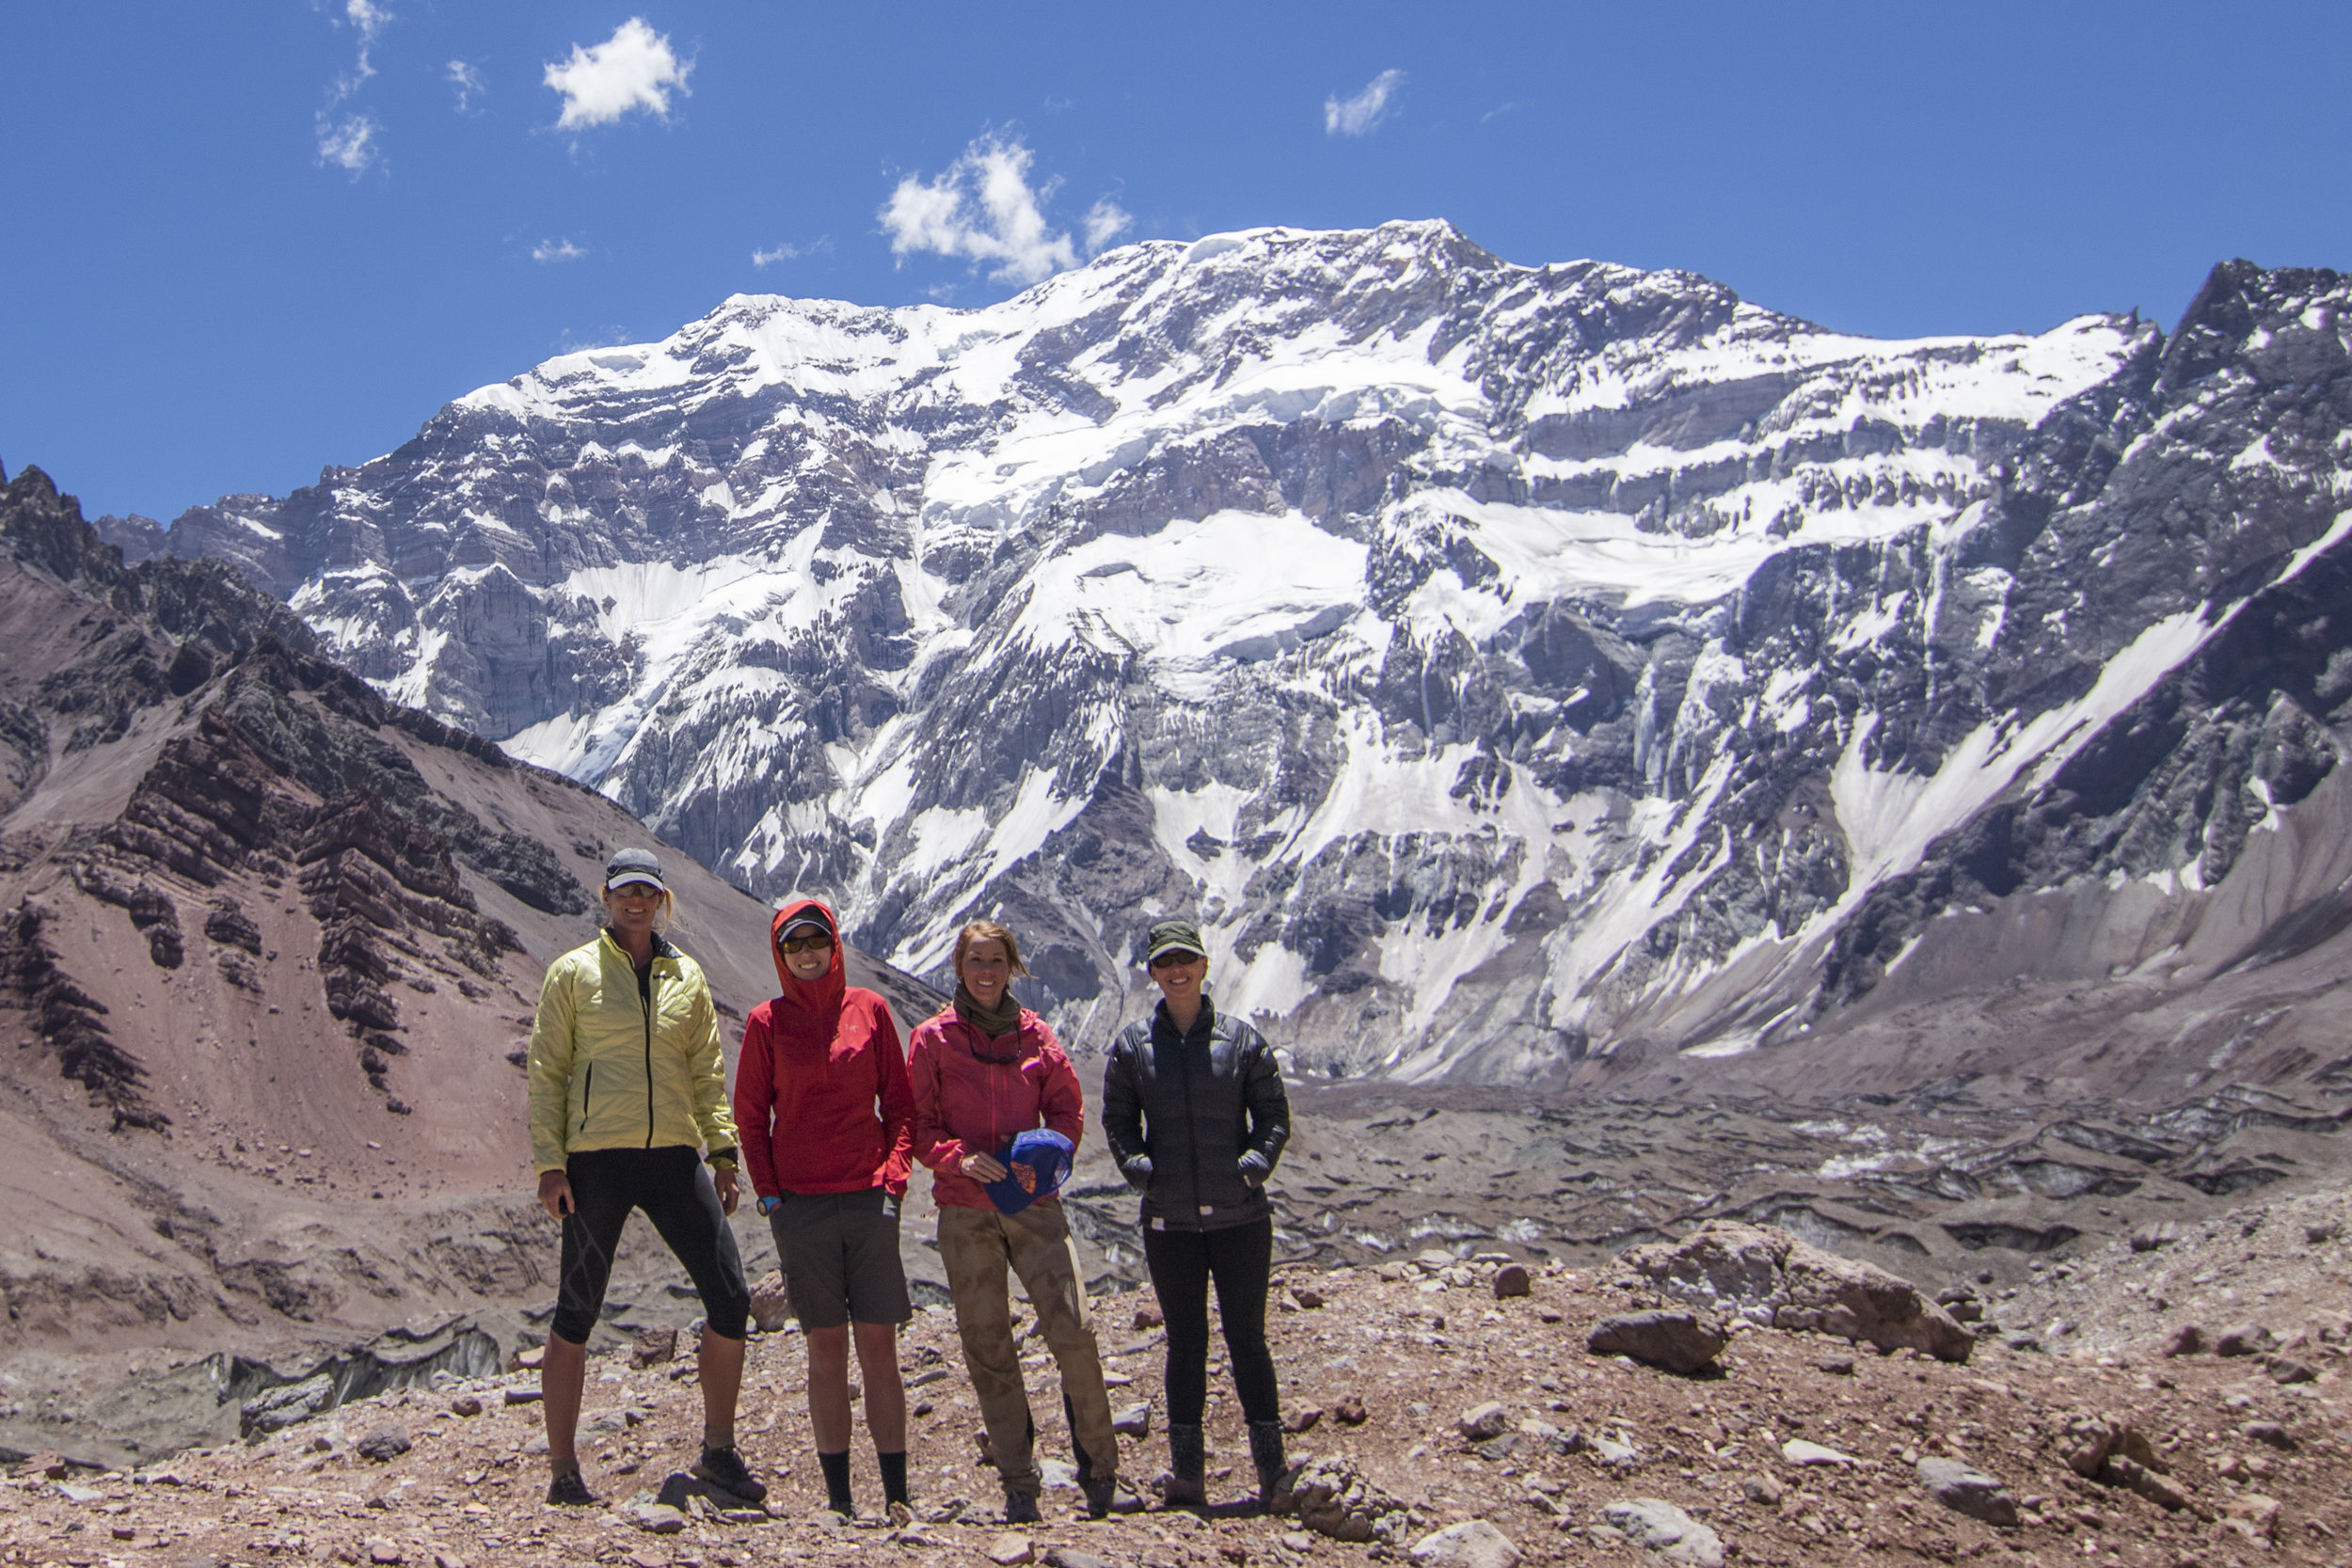 Team Asquerosa on an acclimatization hike in front of Aconcagua's imposing south face, which is equal parts massive and hazardous